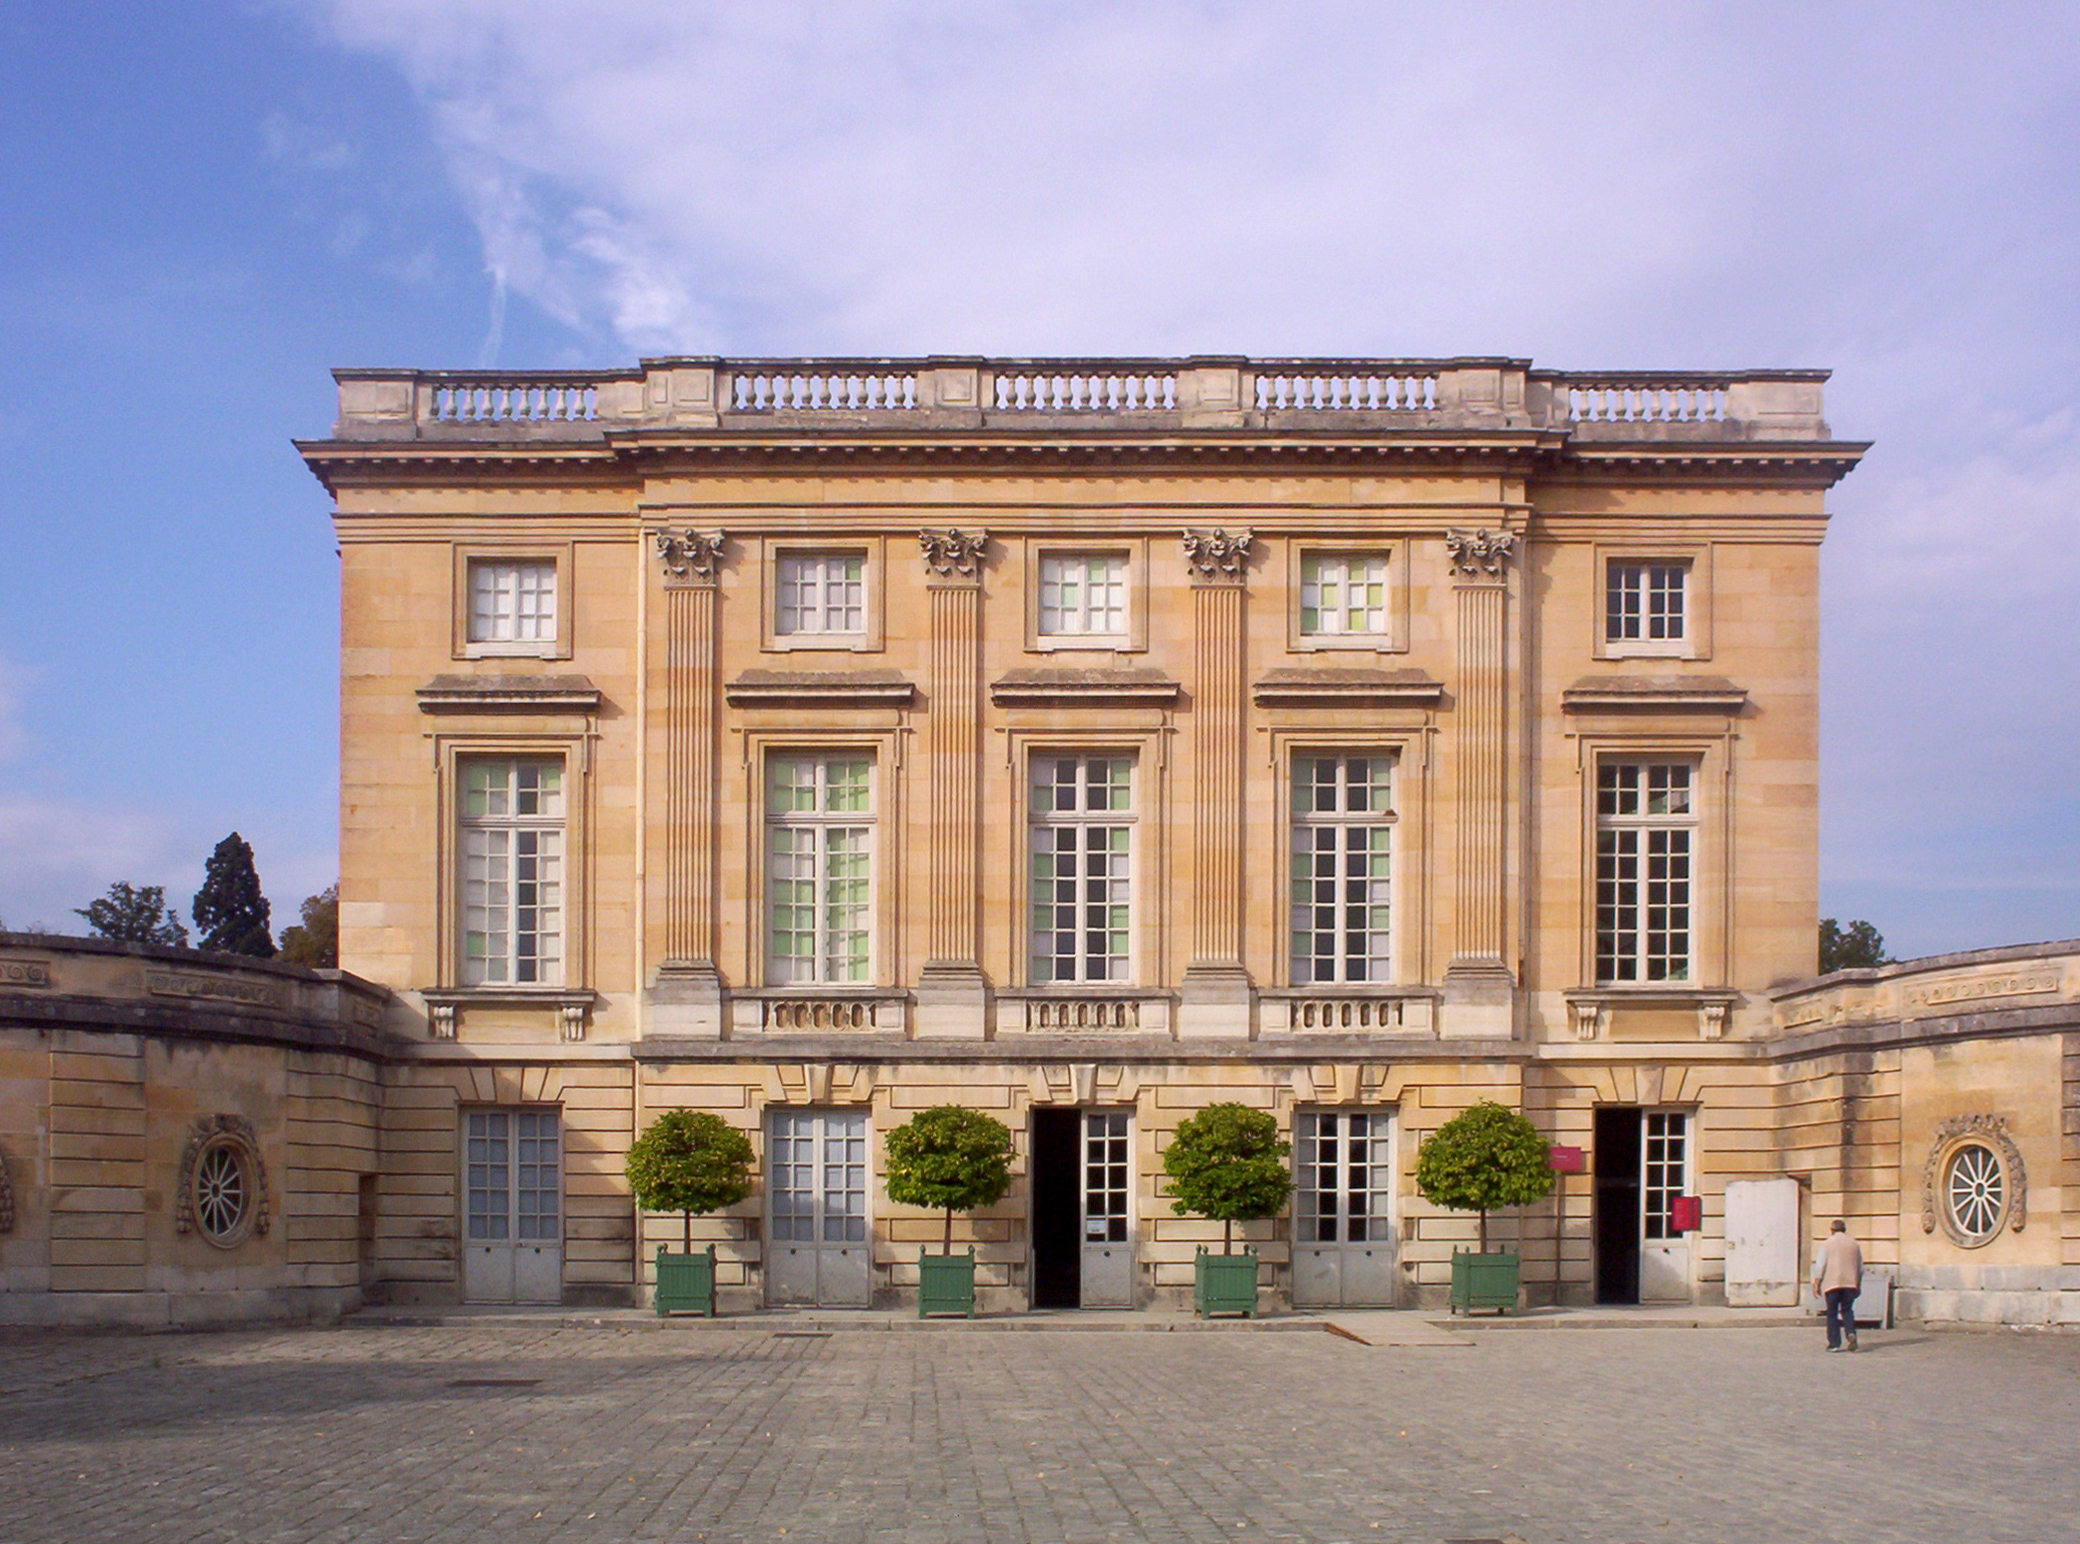 http://upload.wikimedia.org/wikipedia/commons/9/95/Petit_Trianon.JPG